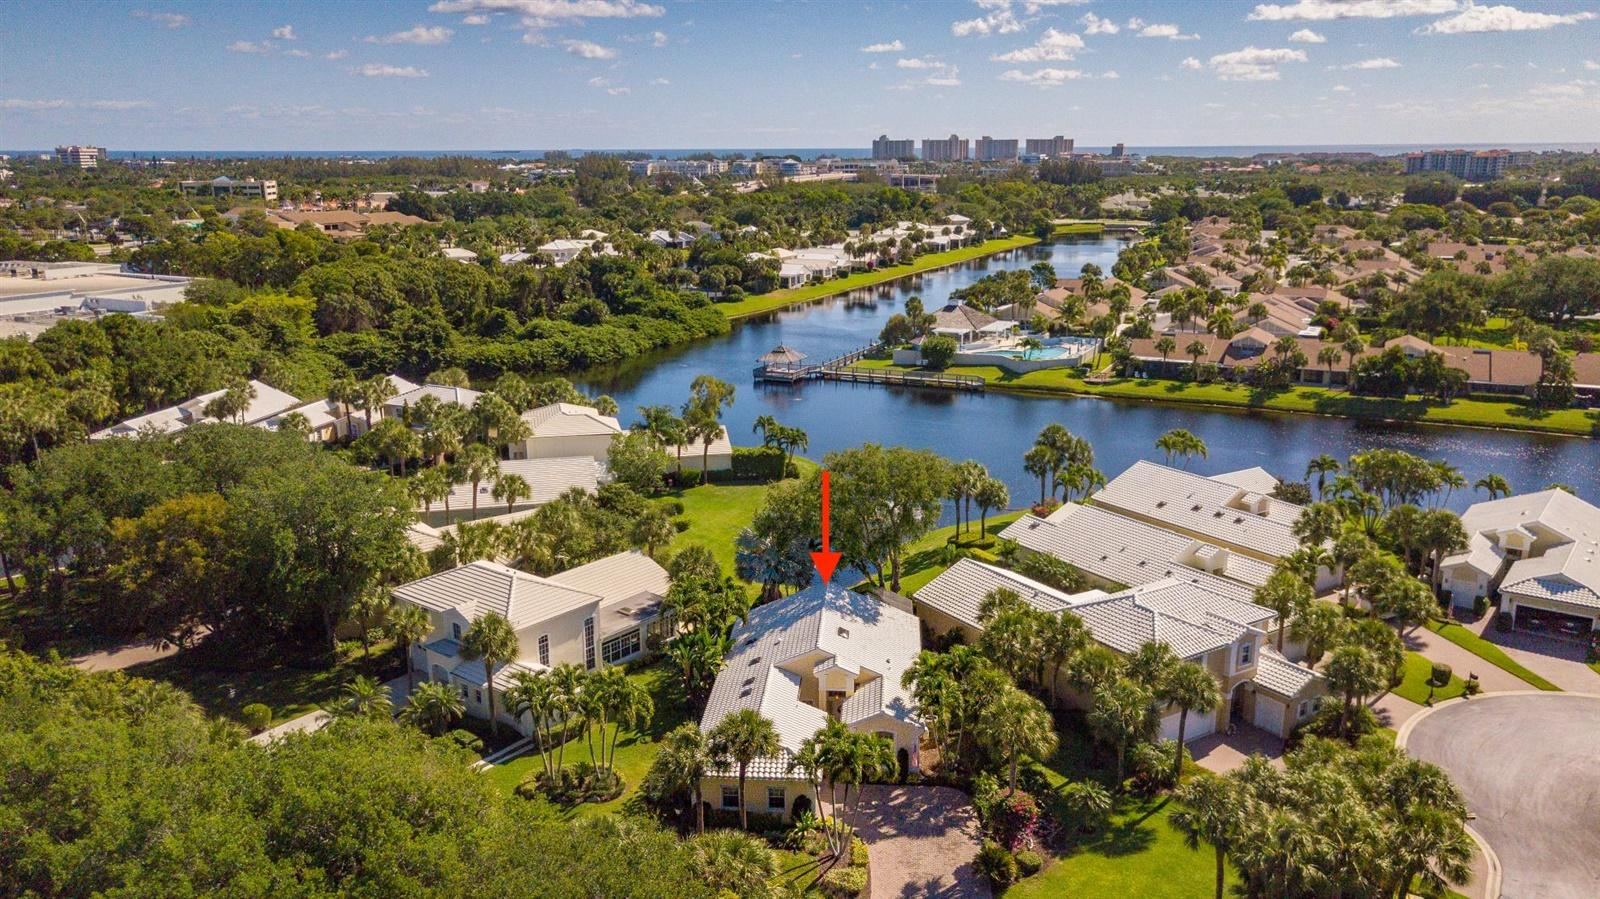 17272 Shoals Drive, Jupiter, Florida 33477, 3 Bedrooms Bedrooms, ,2.1 BathroomsBathrooms,A,Single family,Shoals,RX-10614223